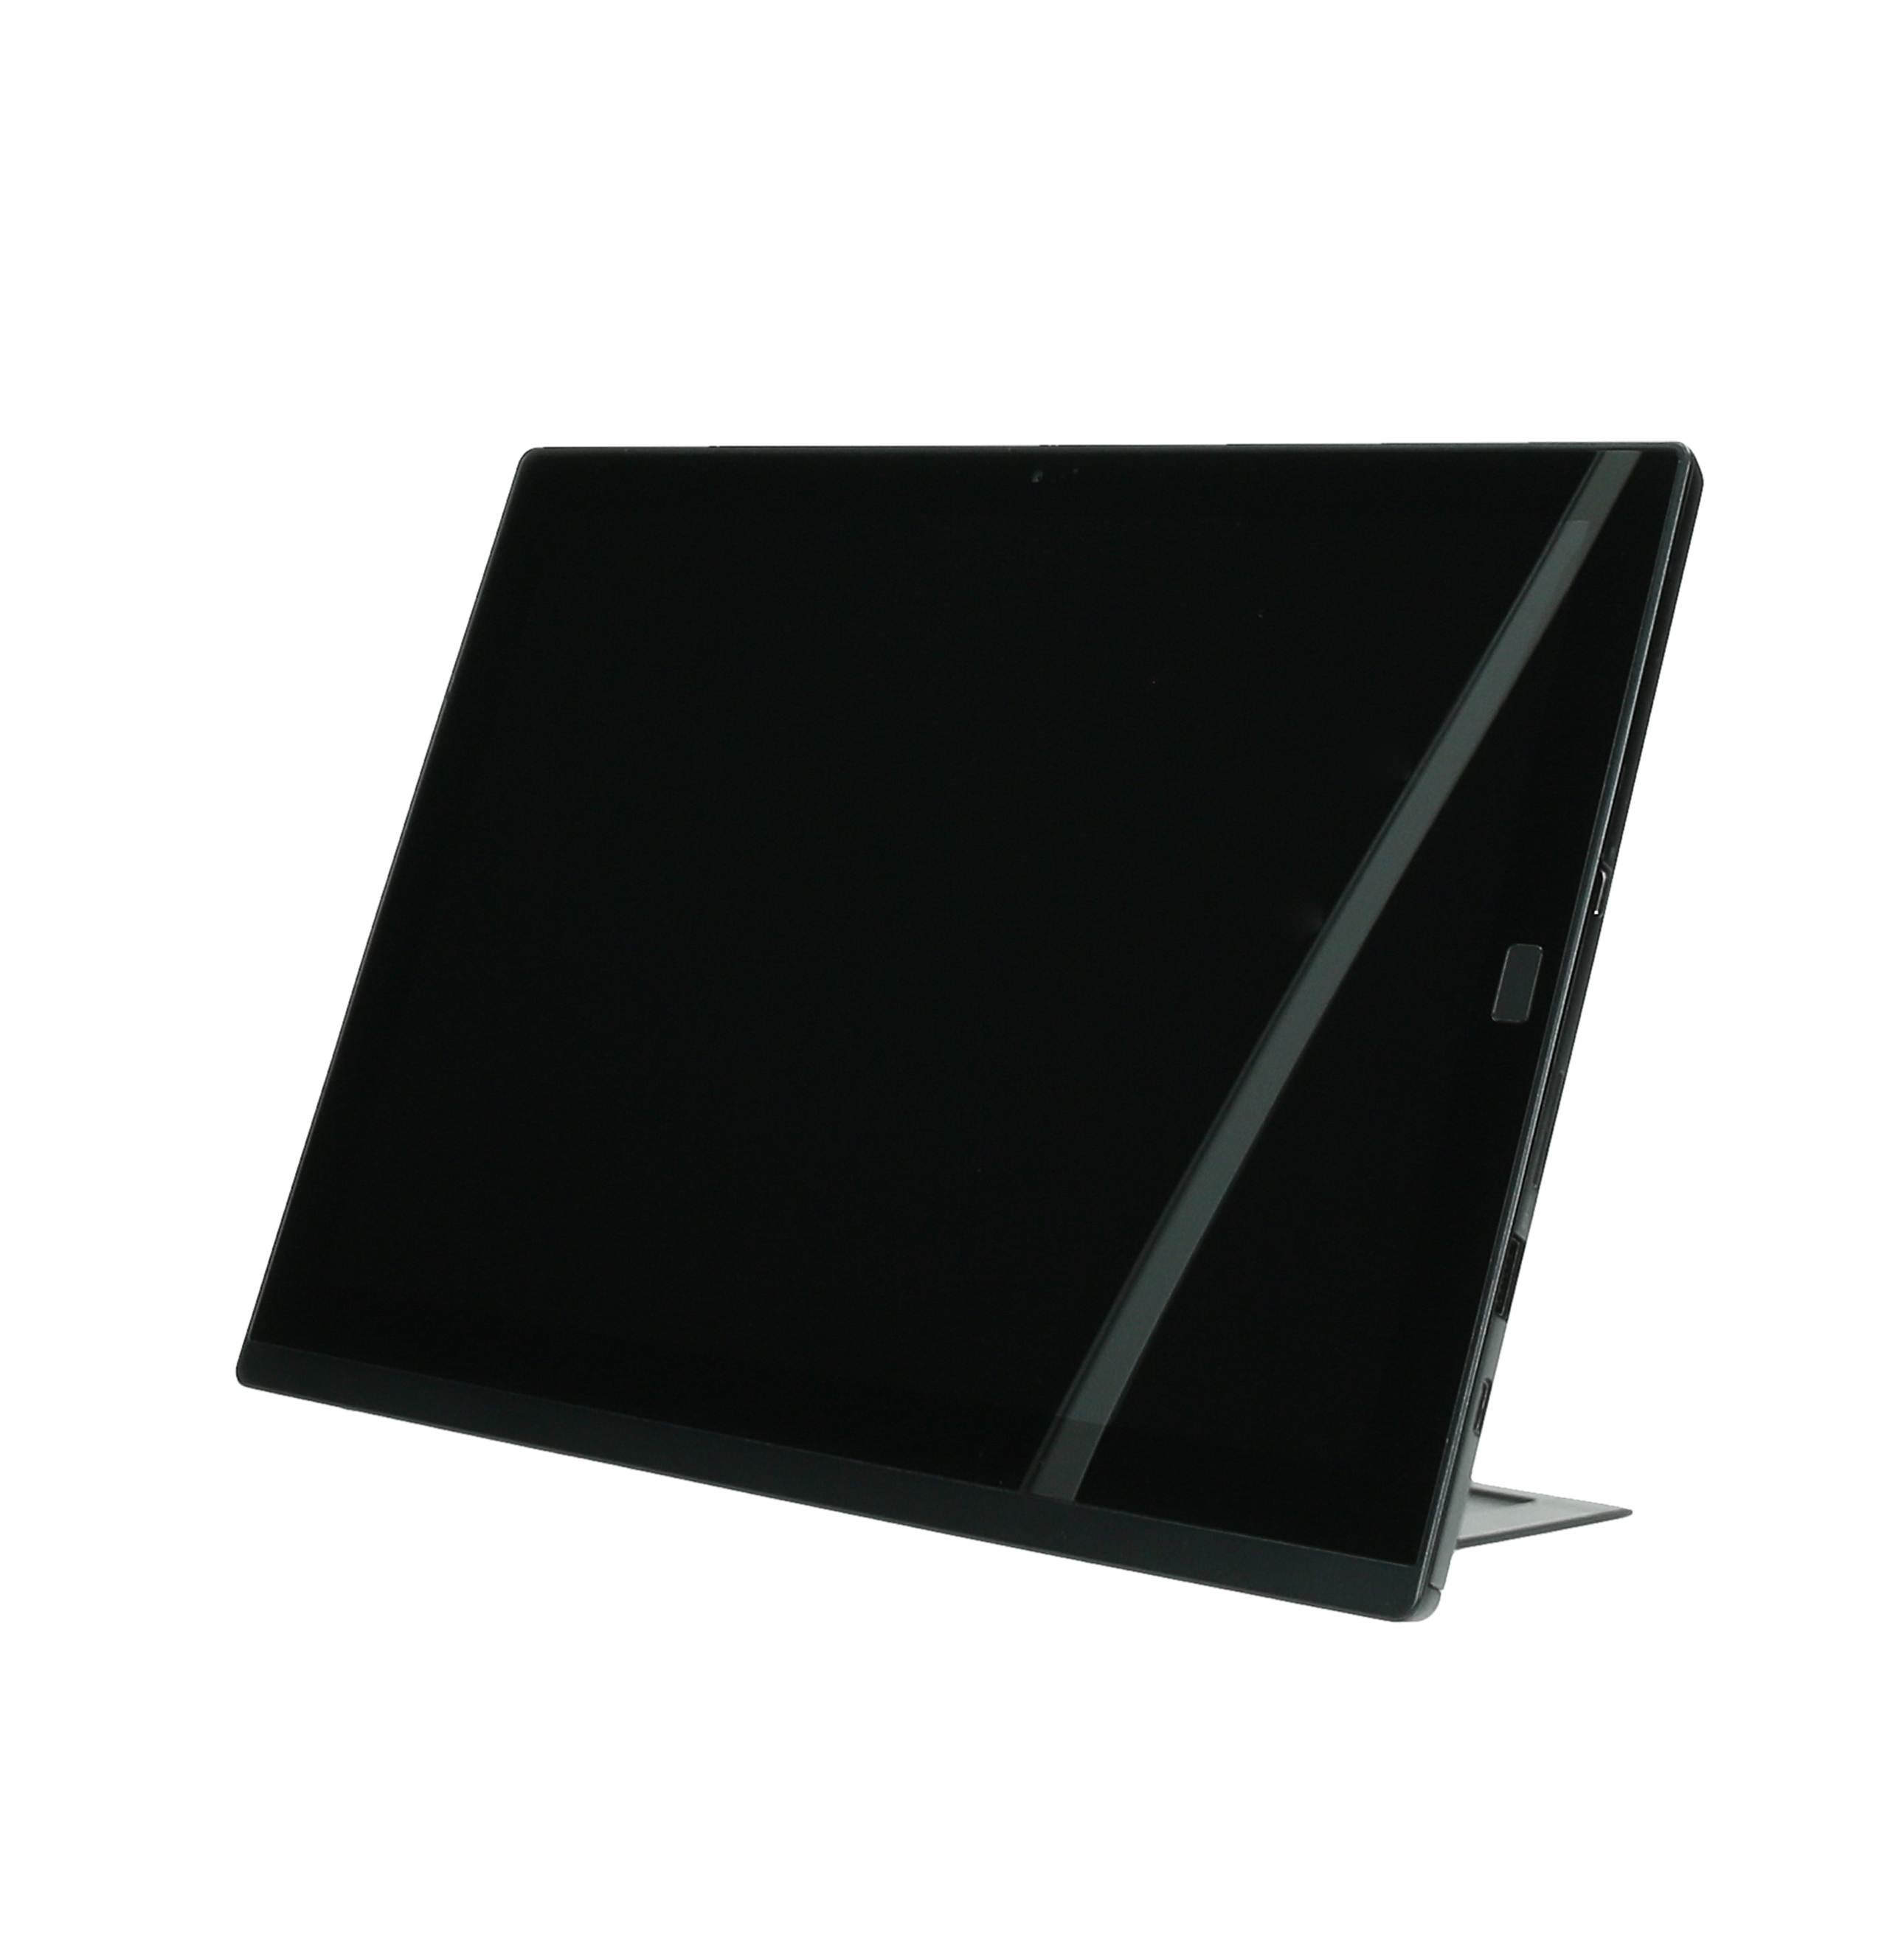 Lenovo ThinkPad X1 Tablet  - shop.bb-net.de